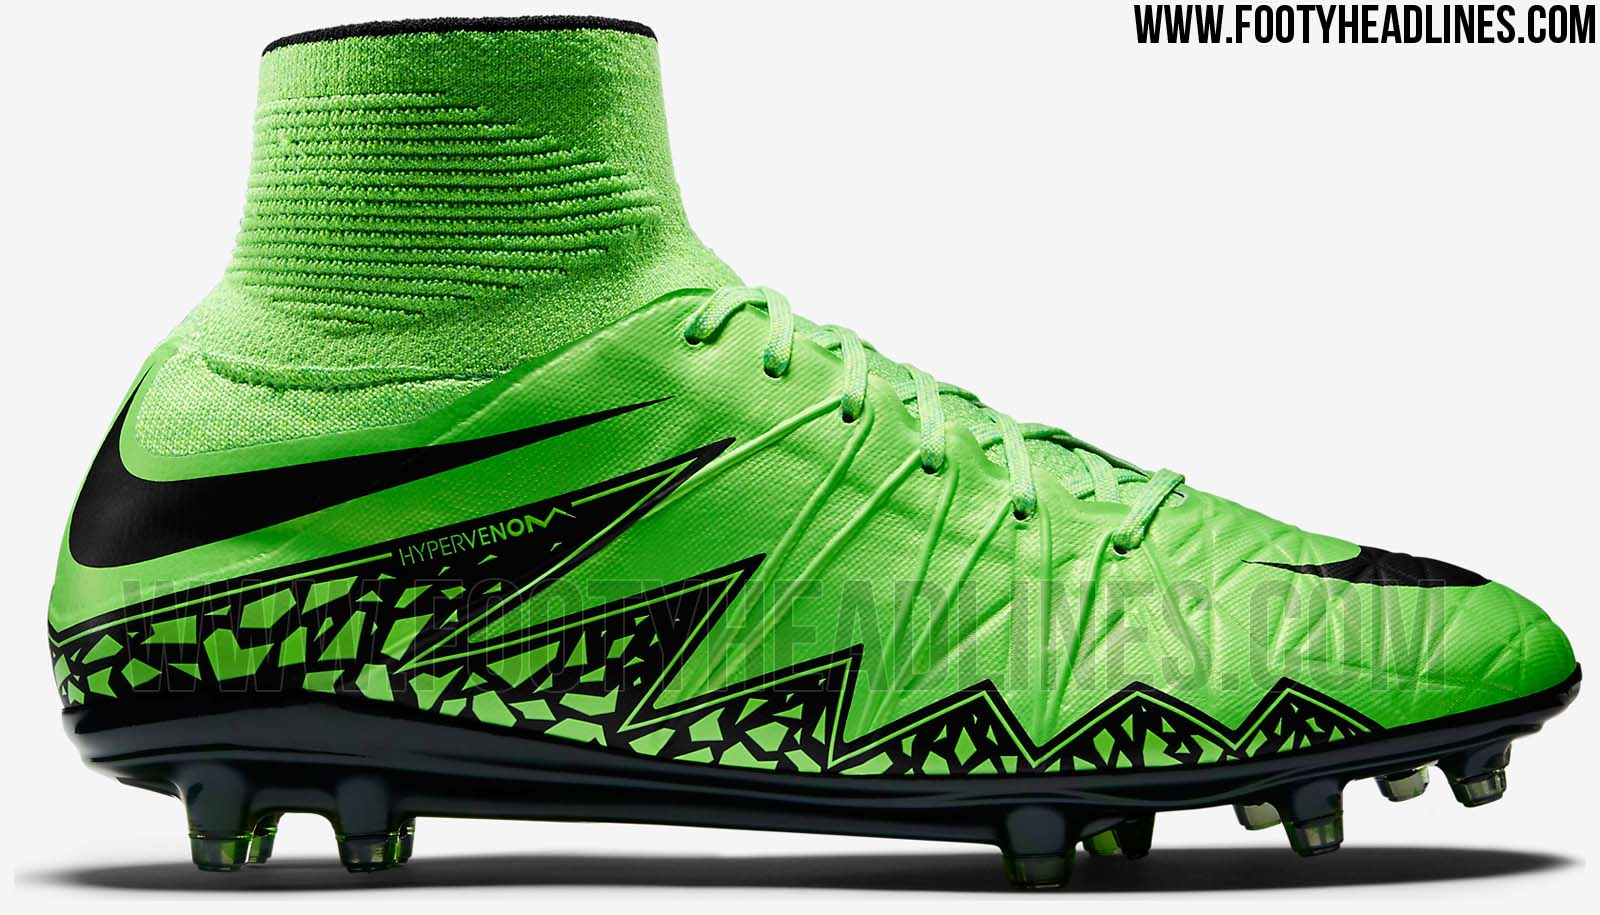 nike lightning storm pack 2015 2016 boots collection released footy headlines. Black Bedroom Furniture Sets. Home Design Ideas